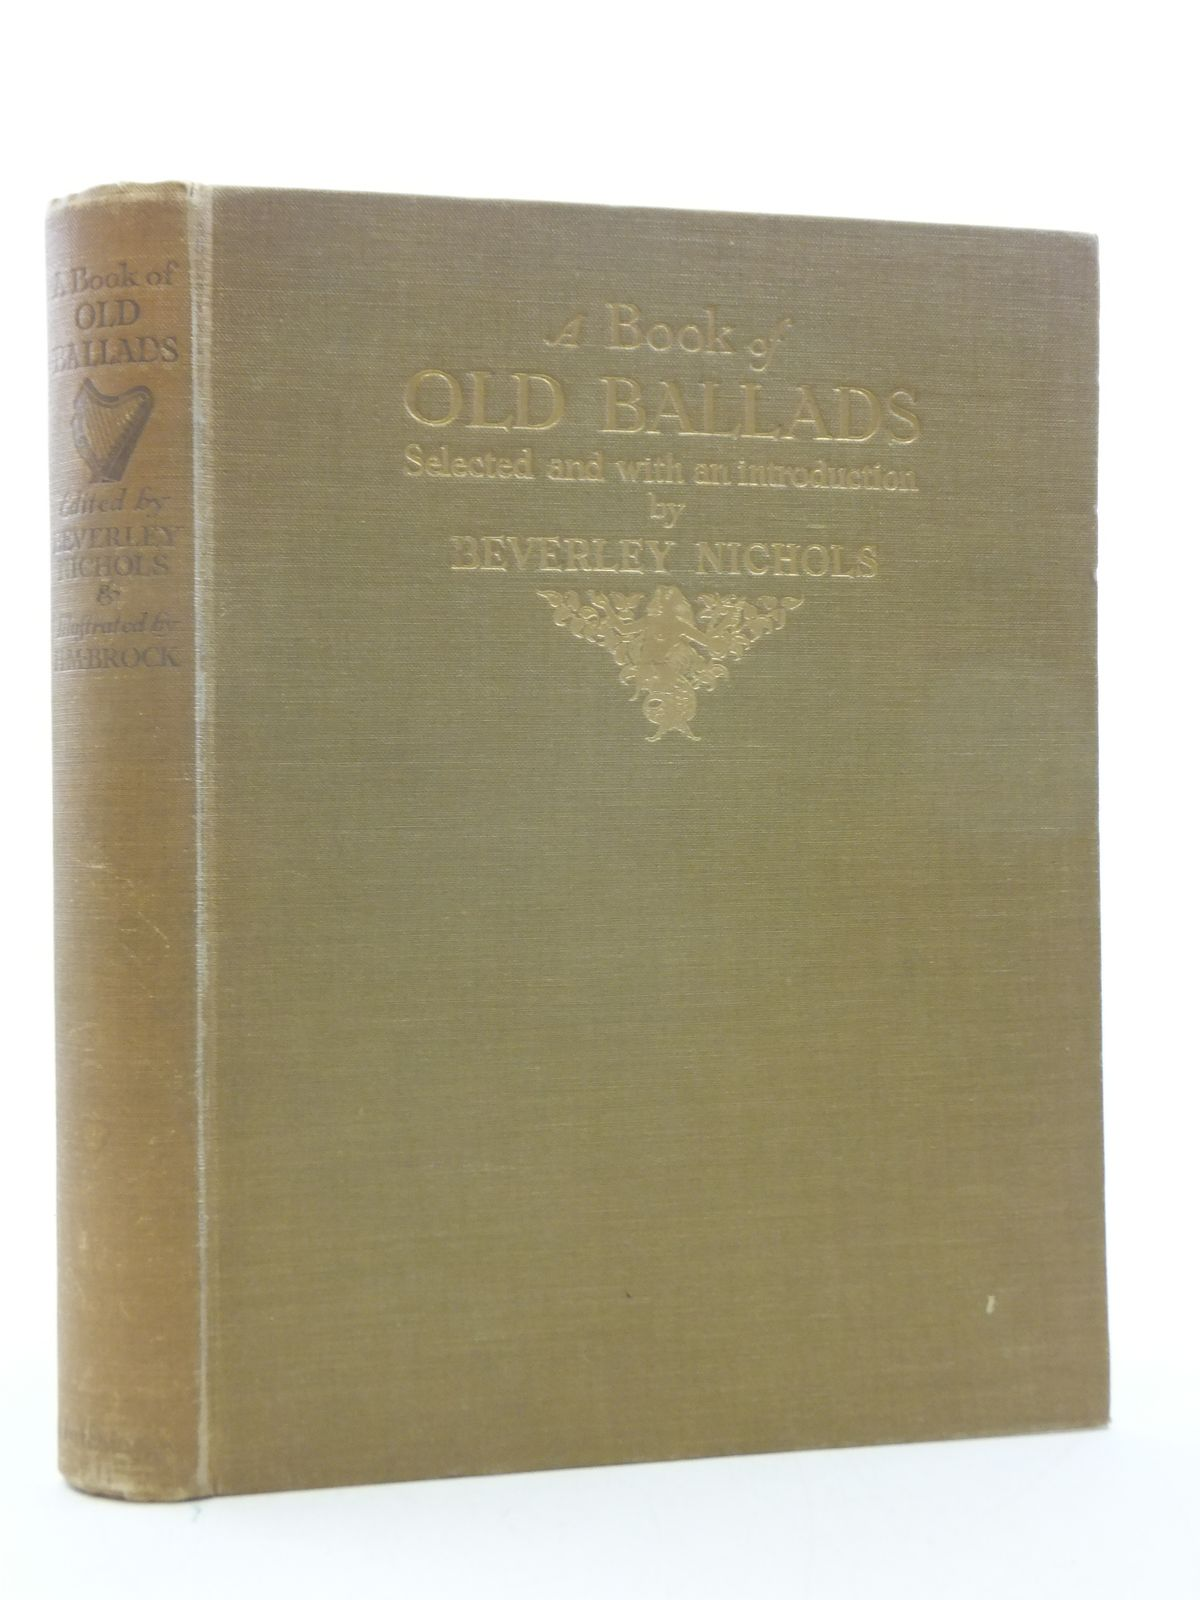 Photo of A BOOK OF OLD BALLADS written by Nichols, Beverley illustrated by Brock, H.M. published by Hutchinson & Co. Ltd (STOCK CODE: 2112874)  for sale by Stella & Rose's Books